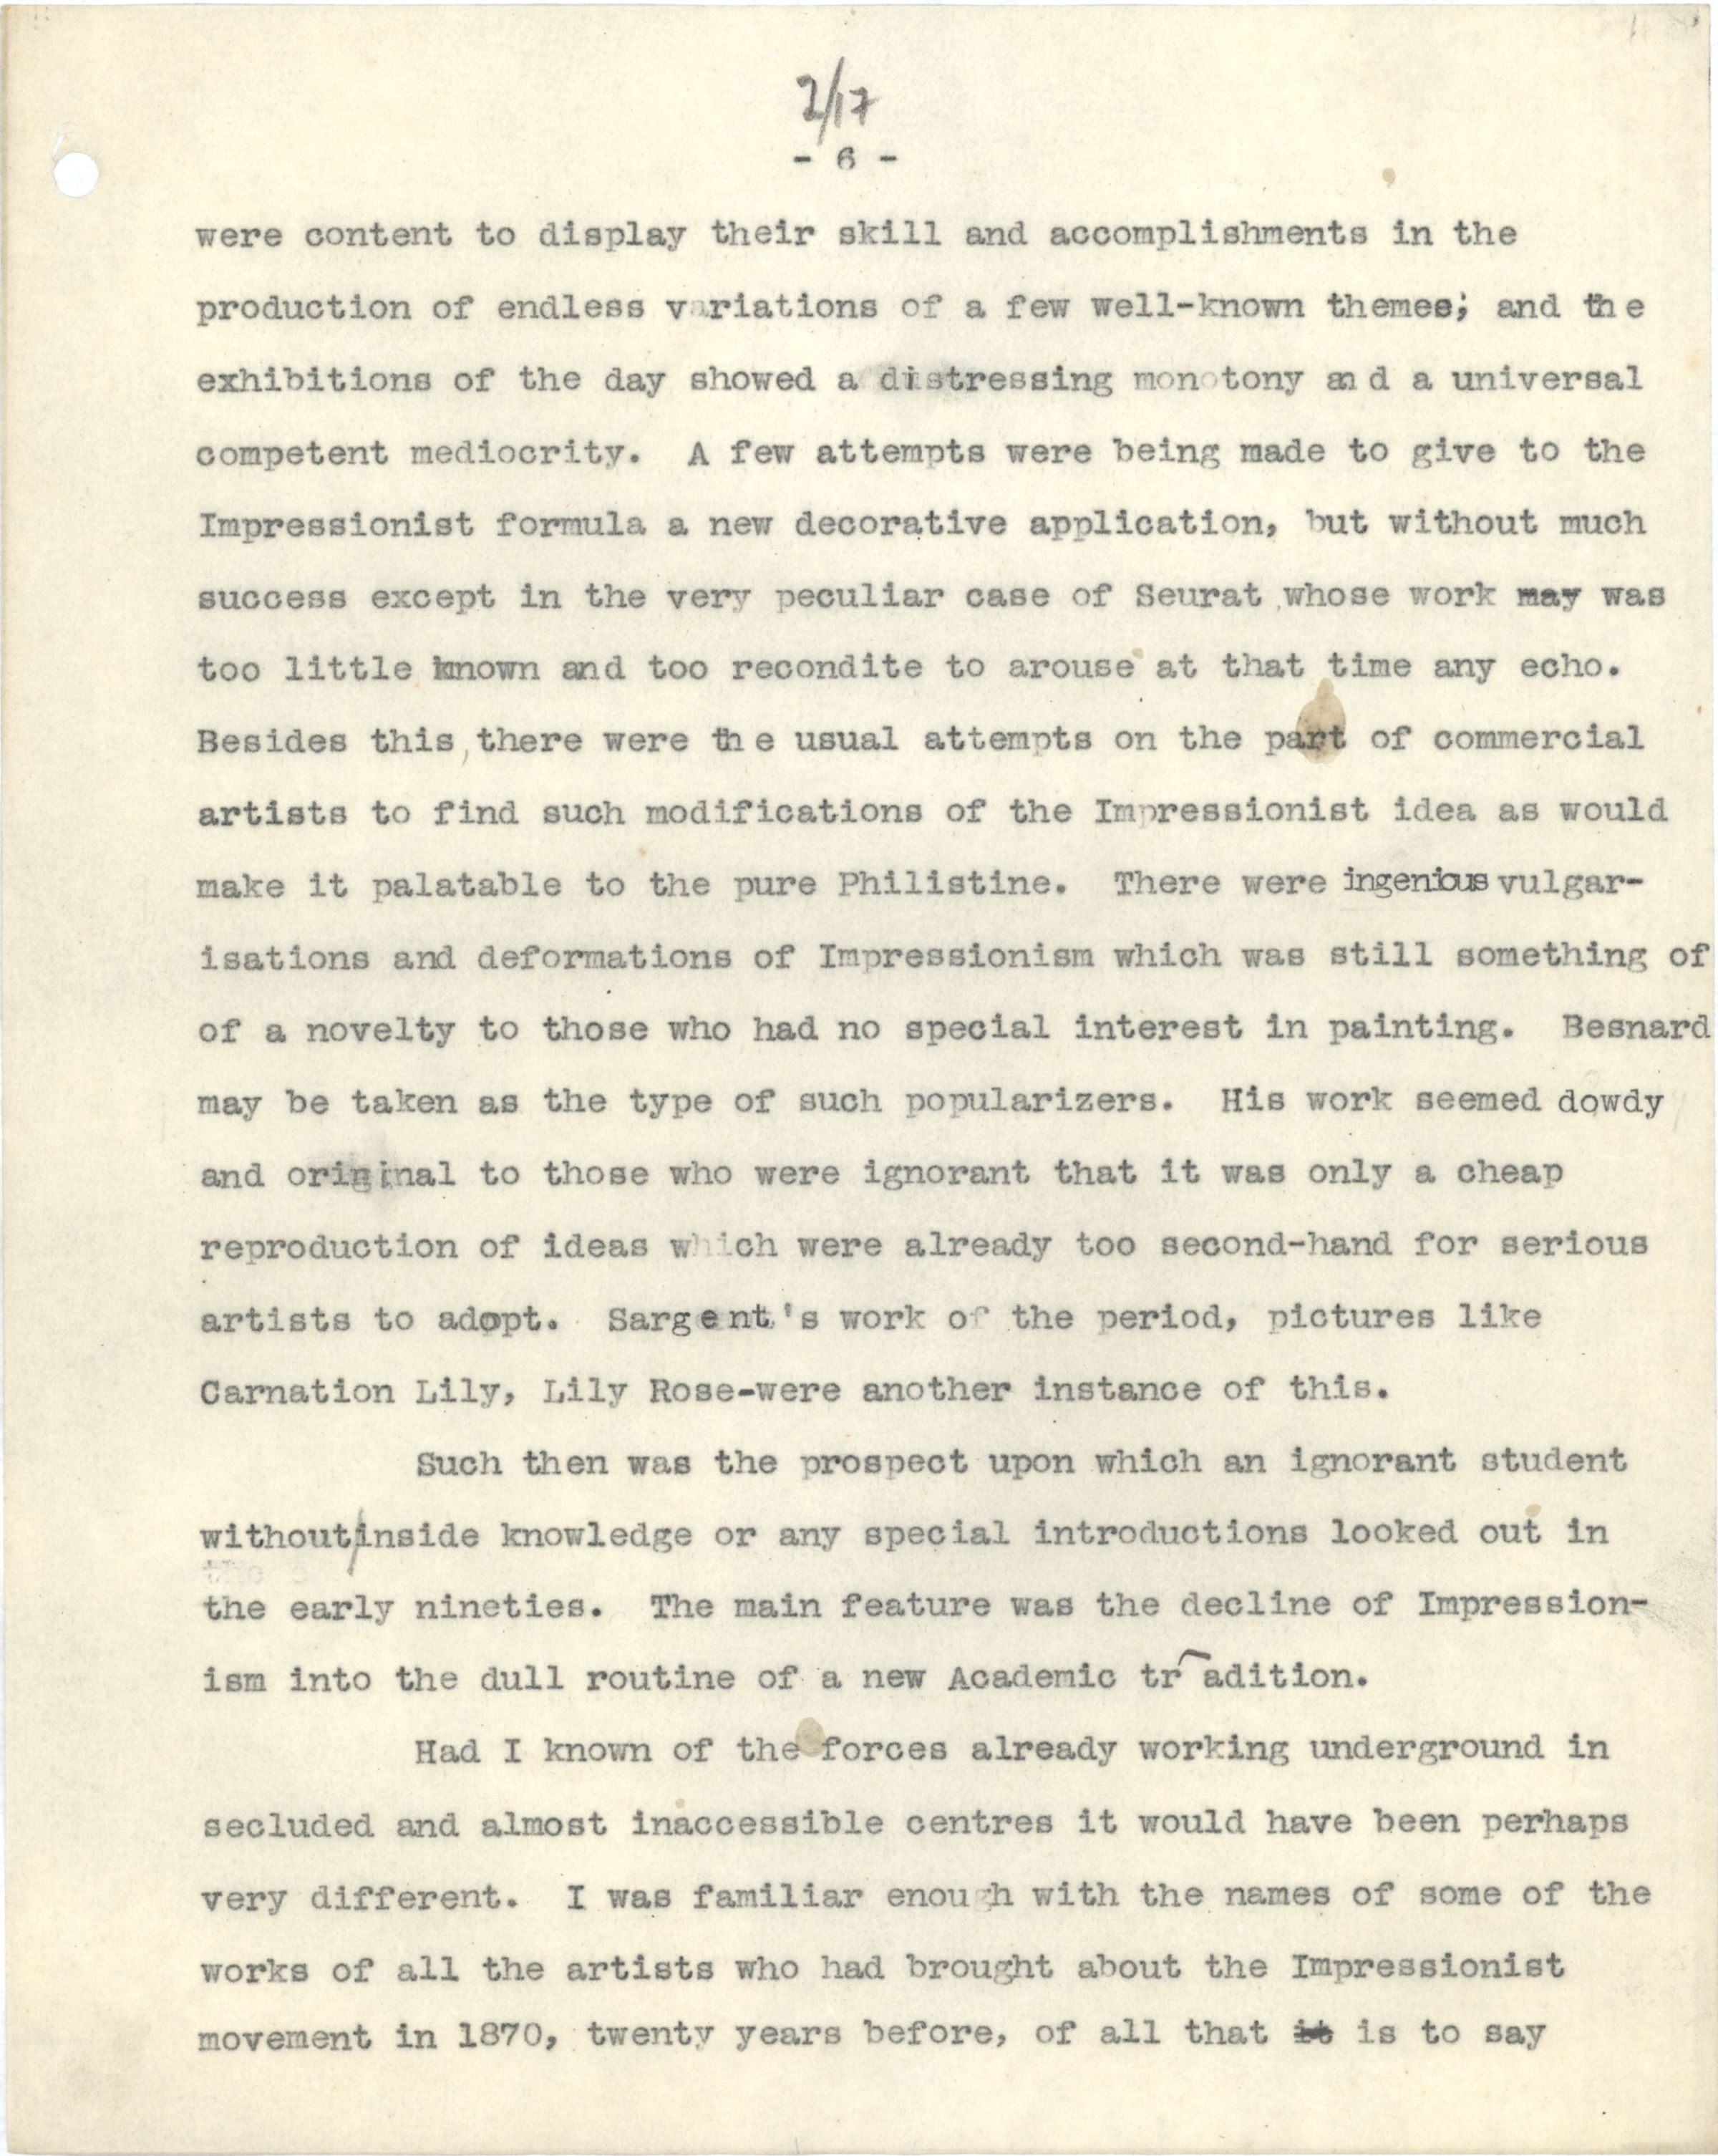 Fry described his experiences in Paris in a lecture given in Bangor on 18 January 1927. [REF/1/117/2, typescript]